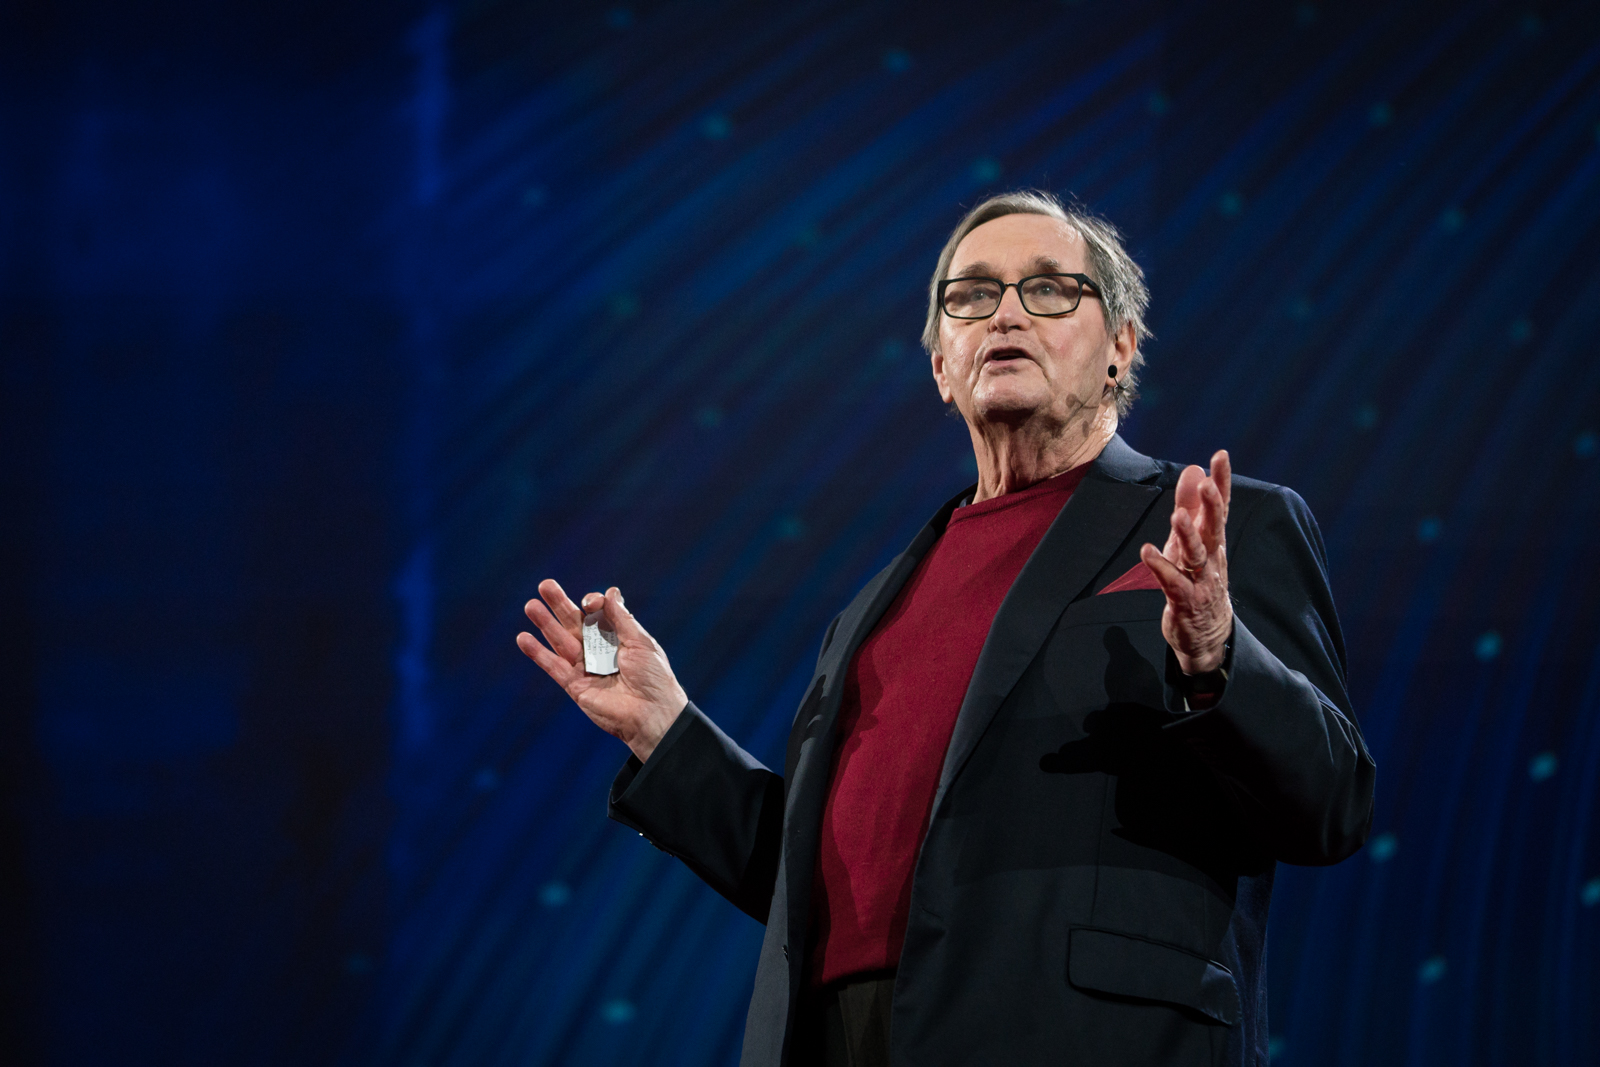 Brian Little speaks at TED2016 - Dream, February 15-19, 2016, Vancouver Convention Center, Vancouver, Canada. Photo: Bret Hartman / TED